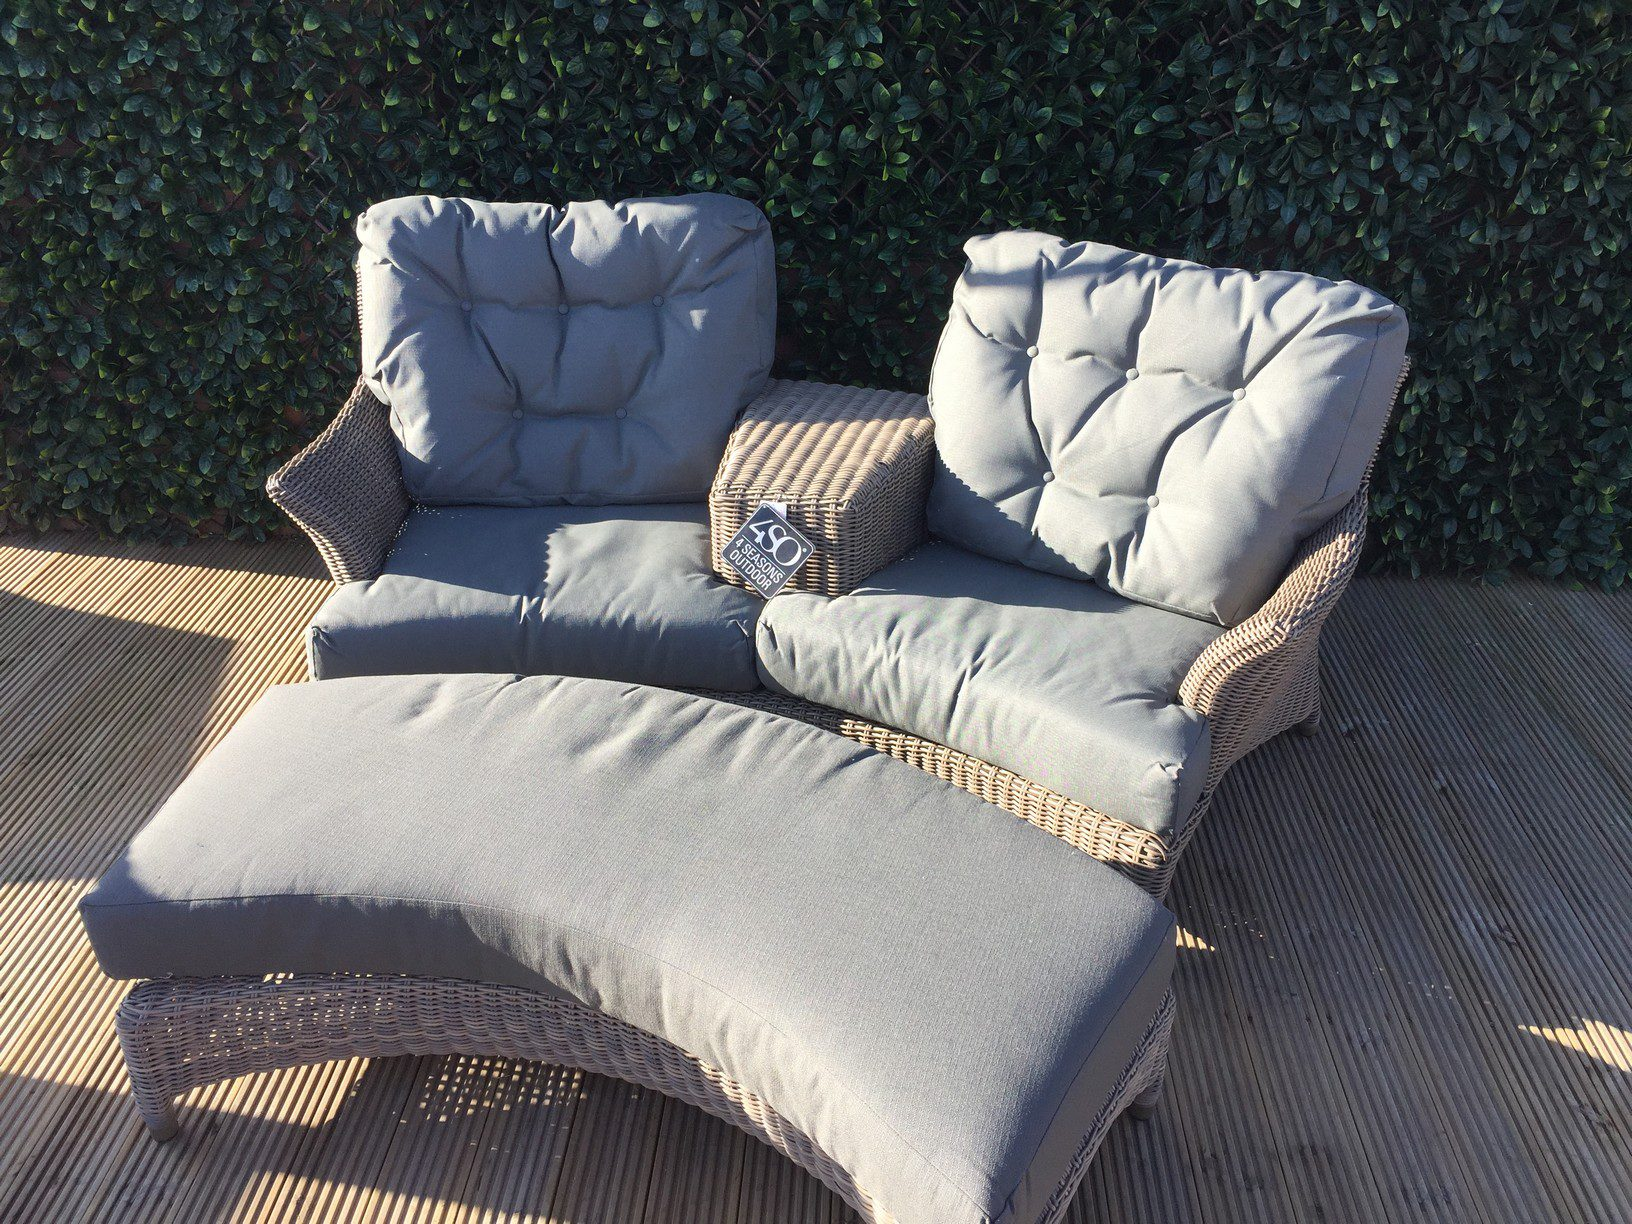 4 Seasons Outdoor Valentine Love Seat With Footrest 13